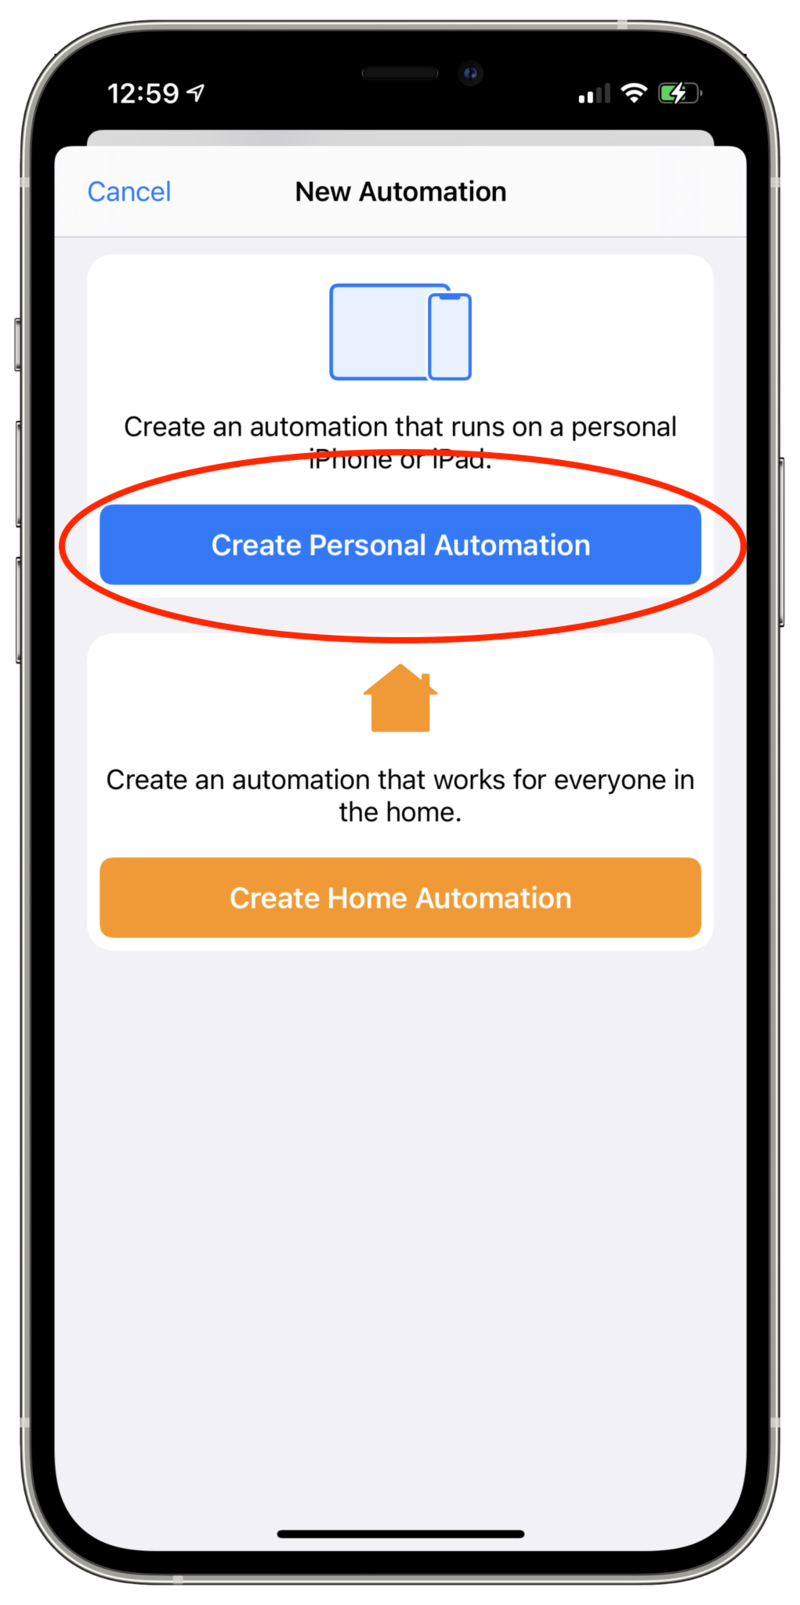 Screenshot showing New Automation page with options for Create Personal Automation and Create Home Automation